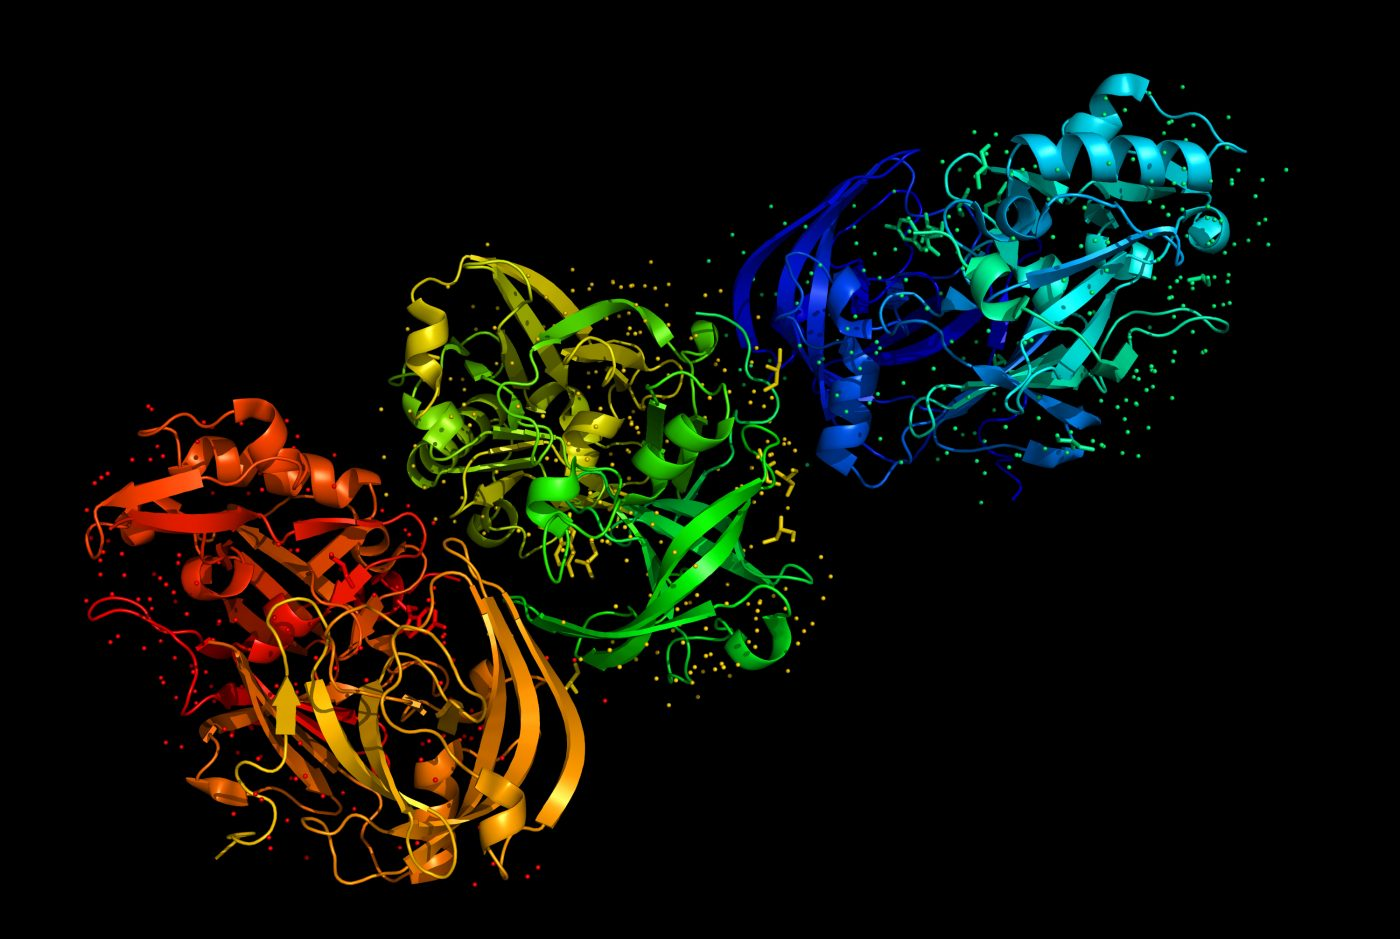 Structure of Toxic Protein Aggregates Opens Door to Novel Parkinson's Disease Treatments